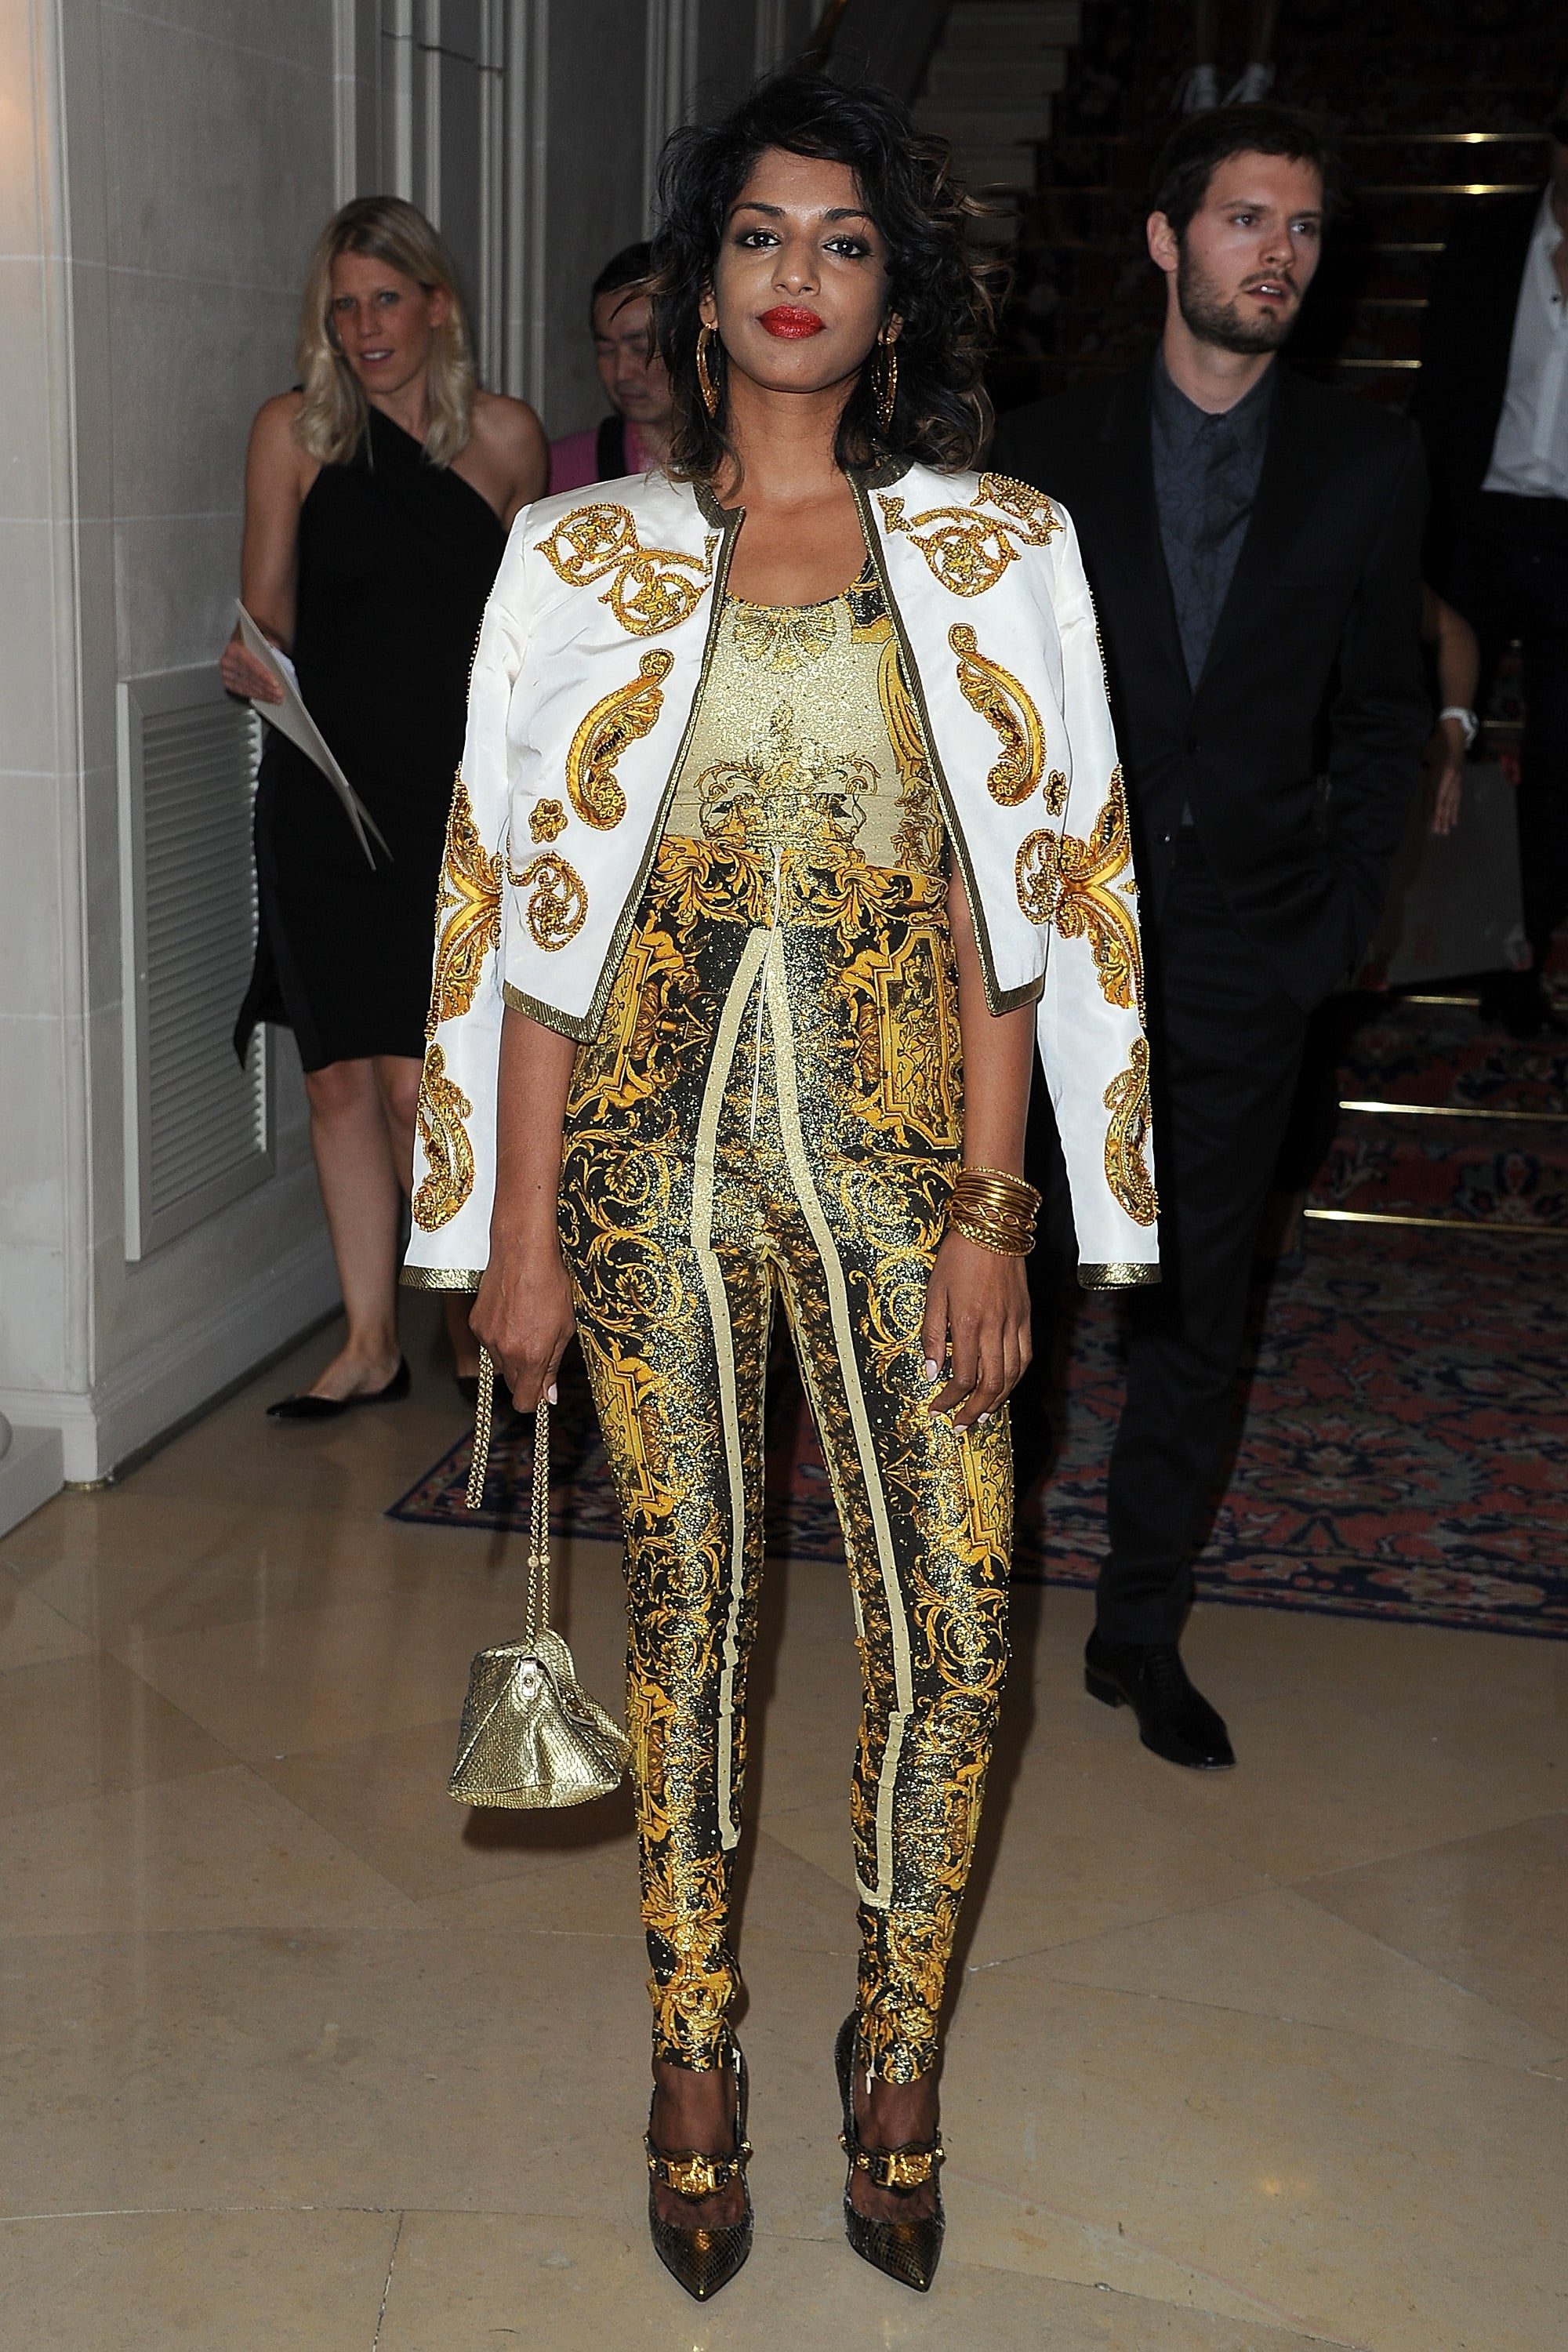 M.I.A. was in attendance for the Versace show for Paris Fashion Week.